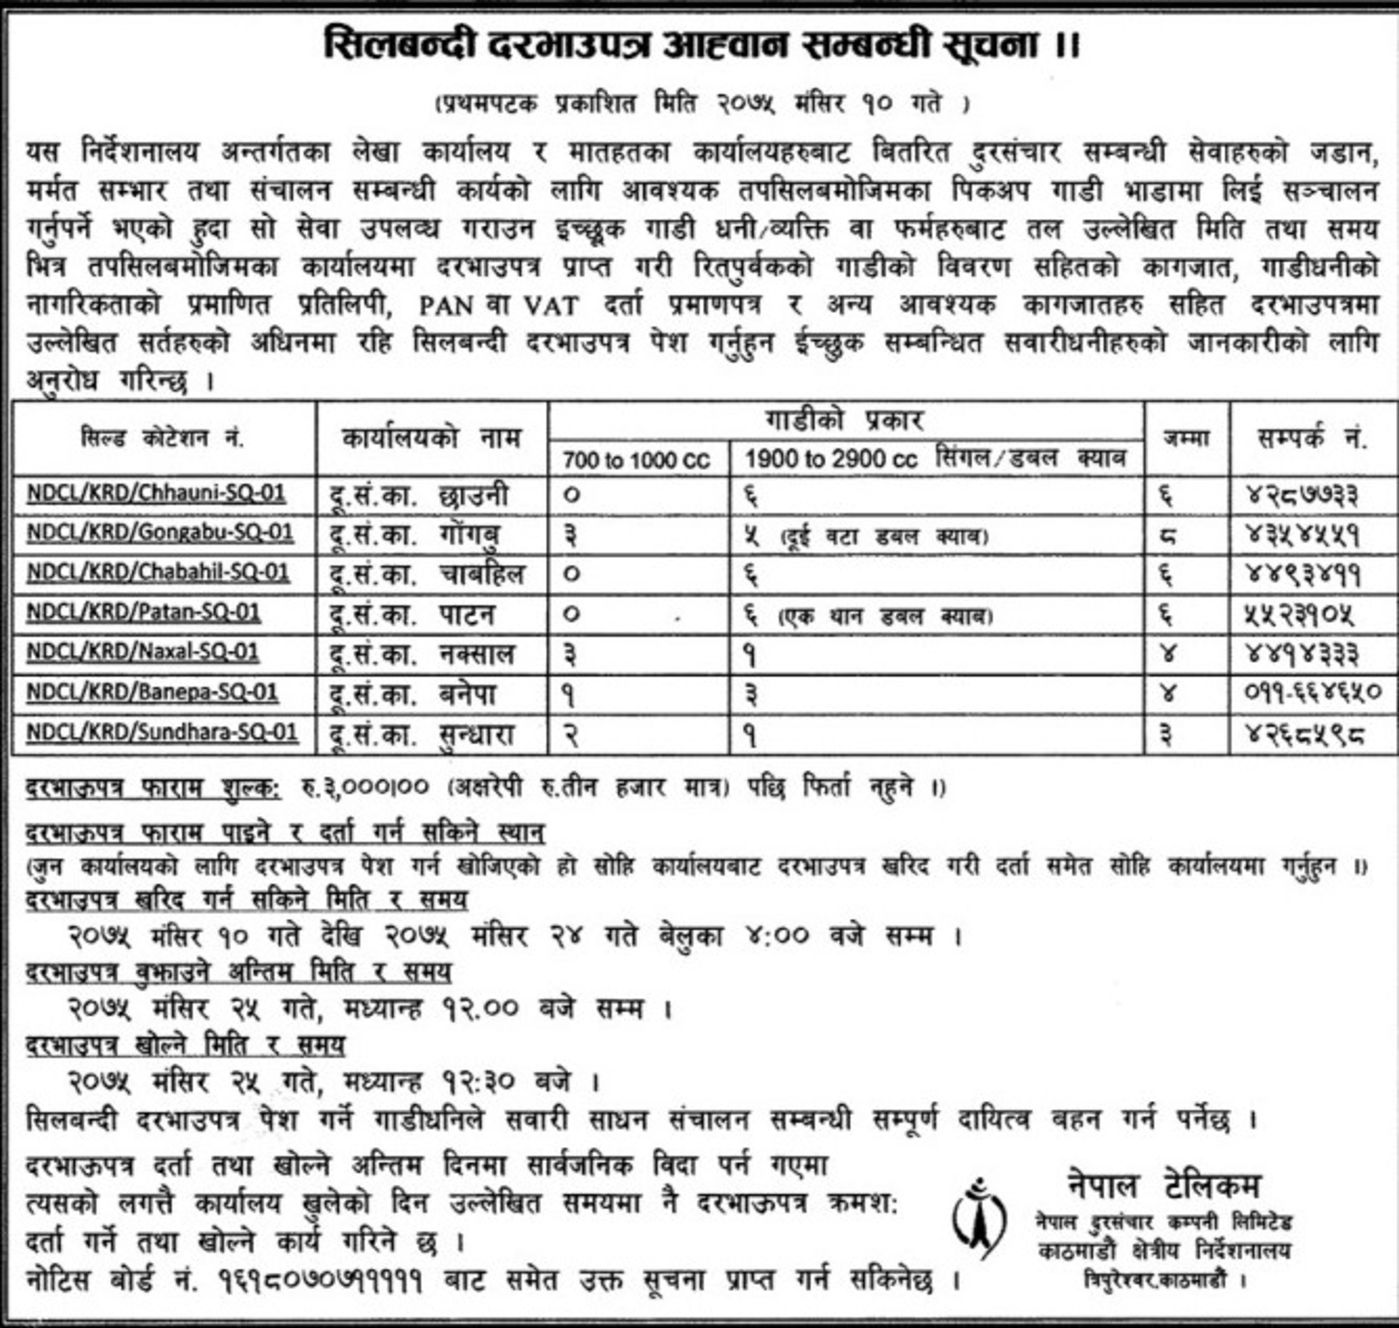 Bids and Tenders Nepal - Tender -Construction and